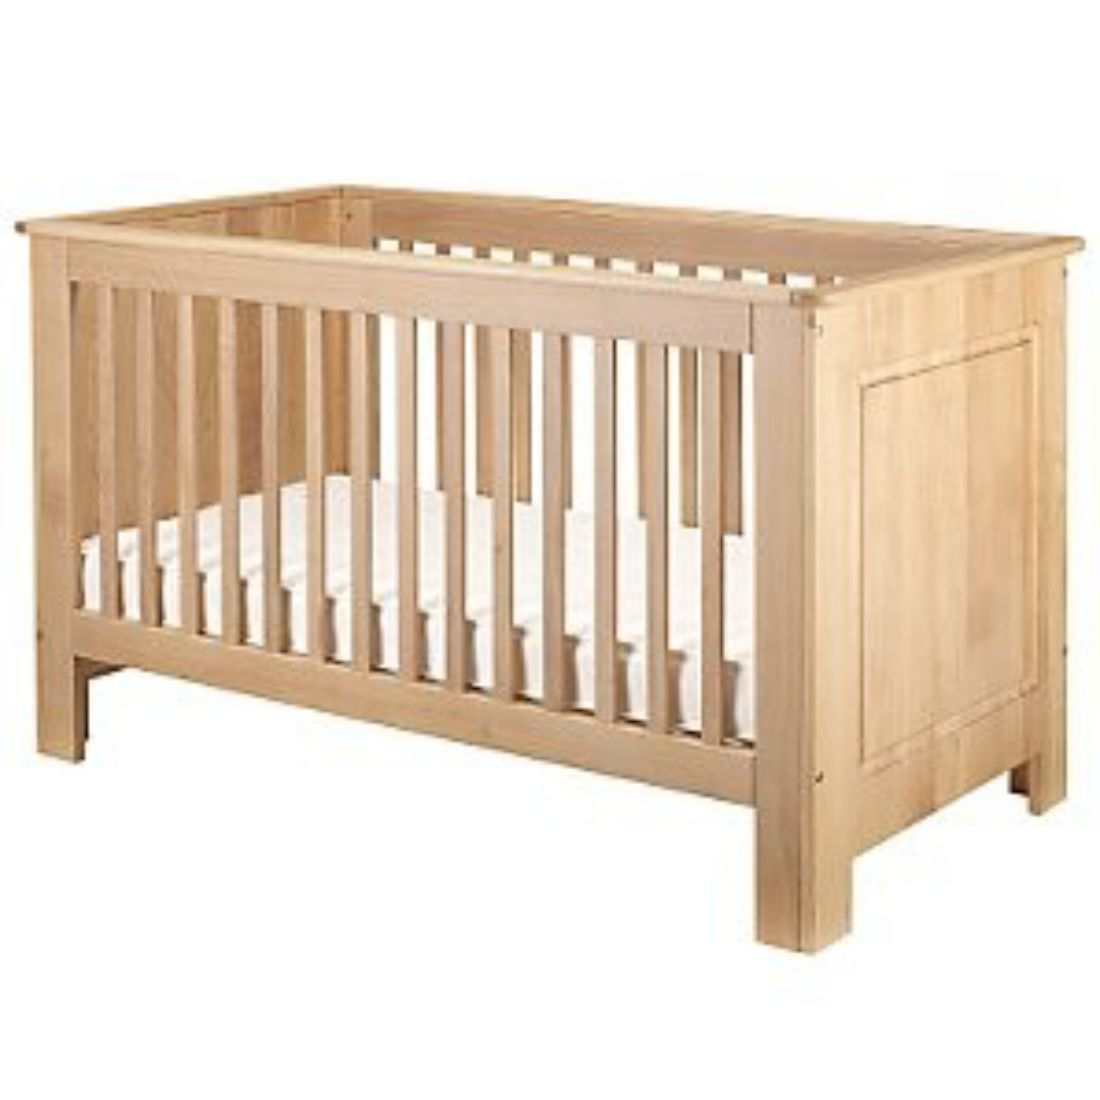 ... to fit John Lewis DECO cot bed - mattress size is 140 x 70 cm